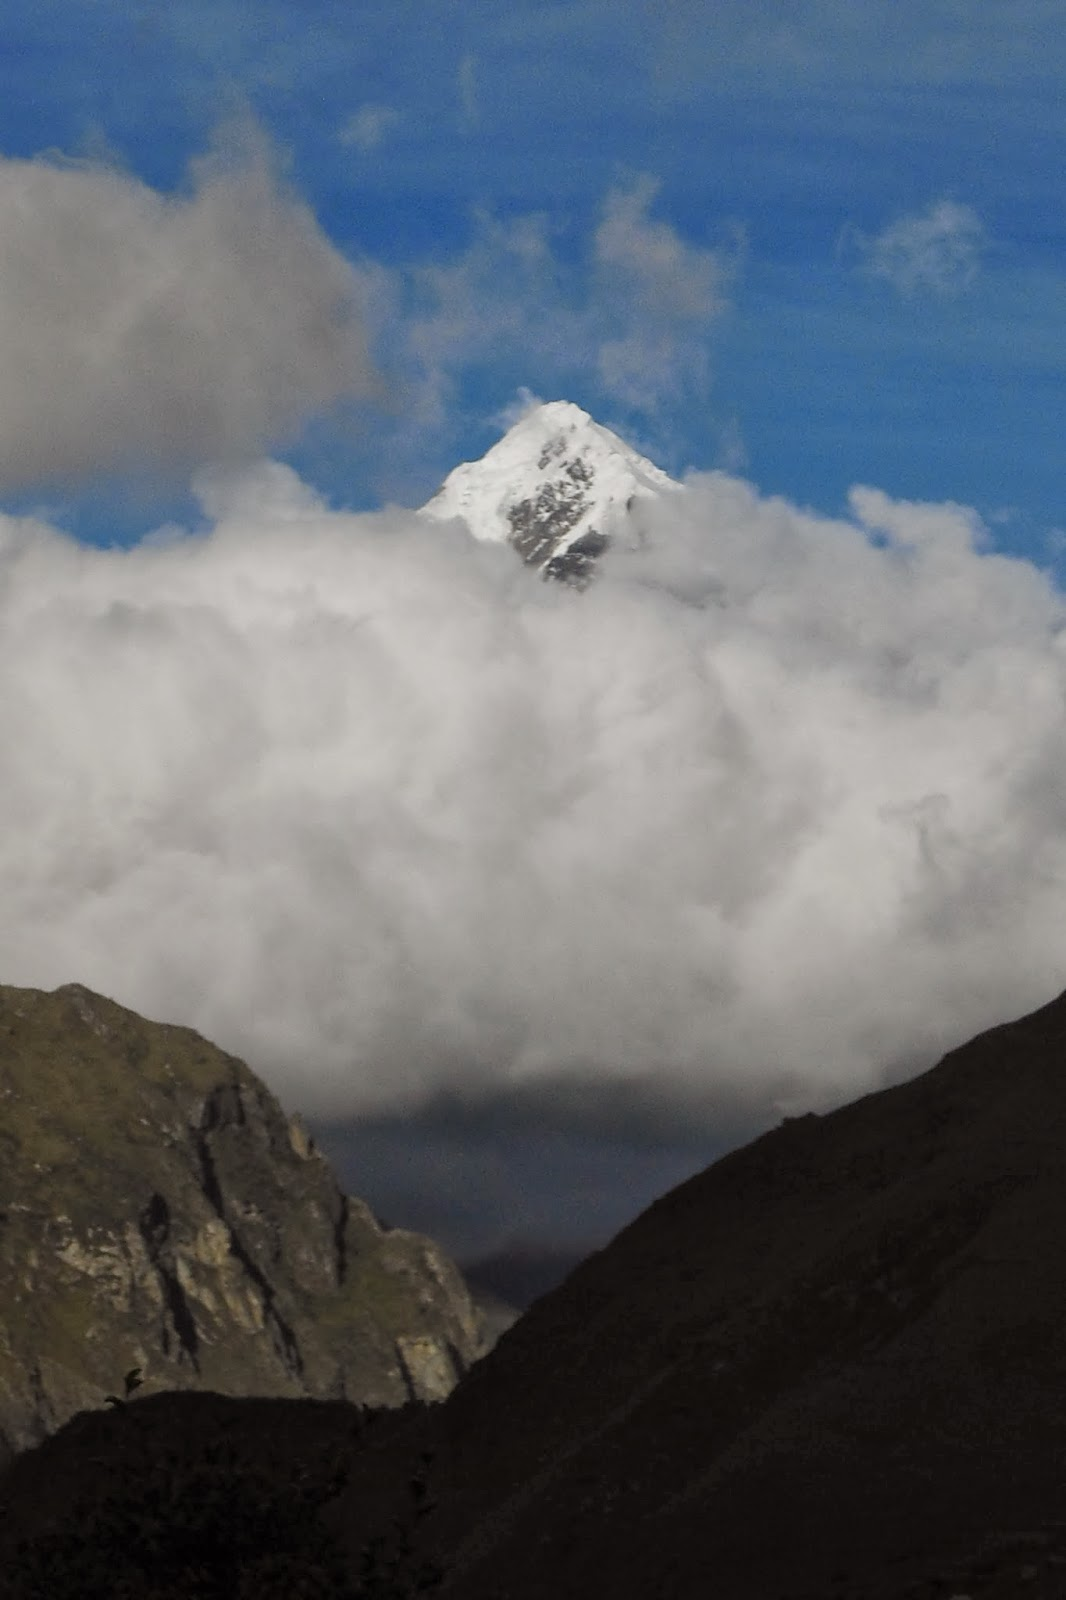 The majestic Andes -- they would make any person want to travel.